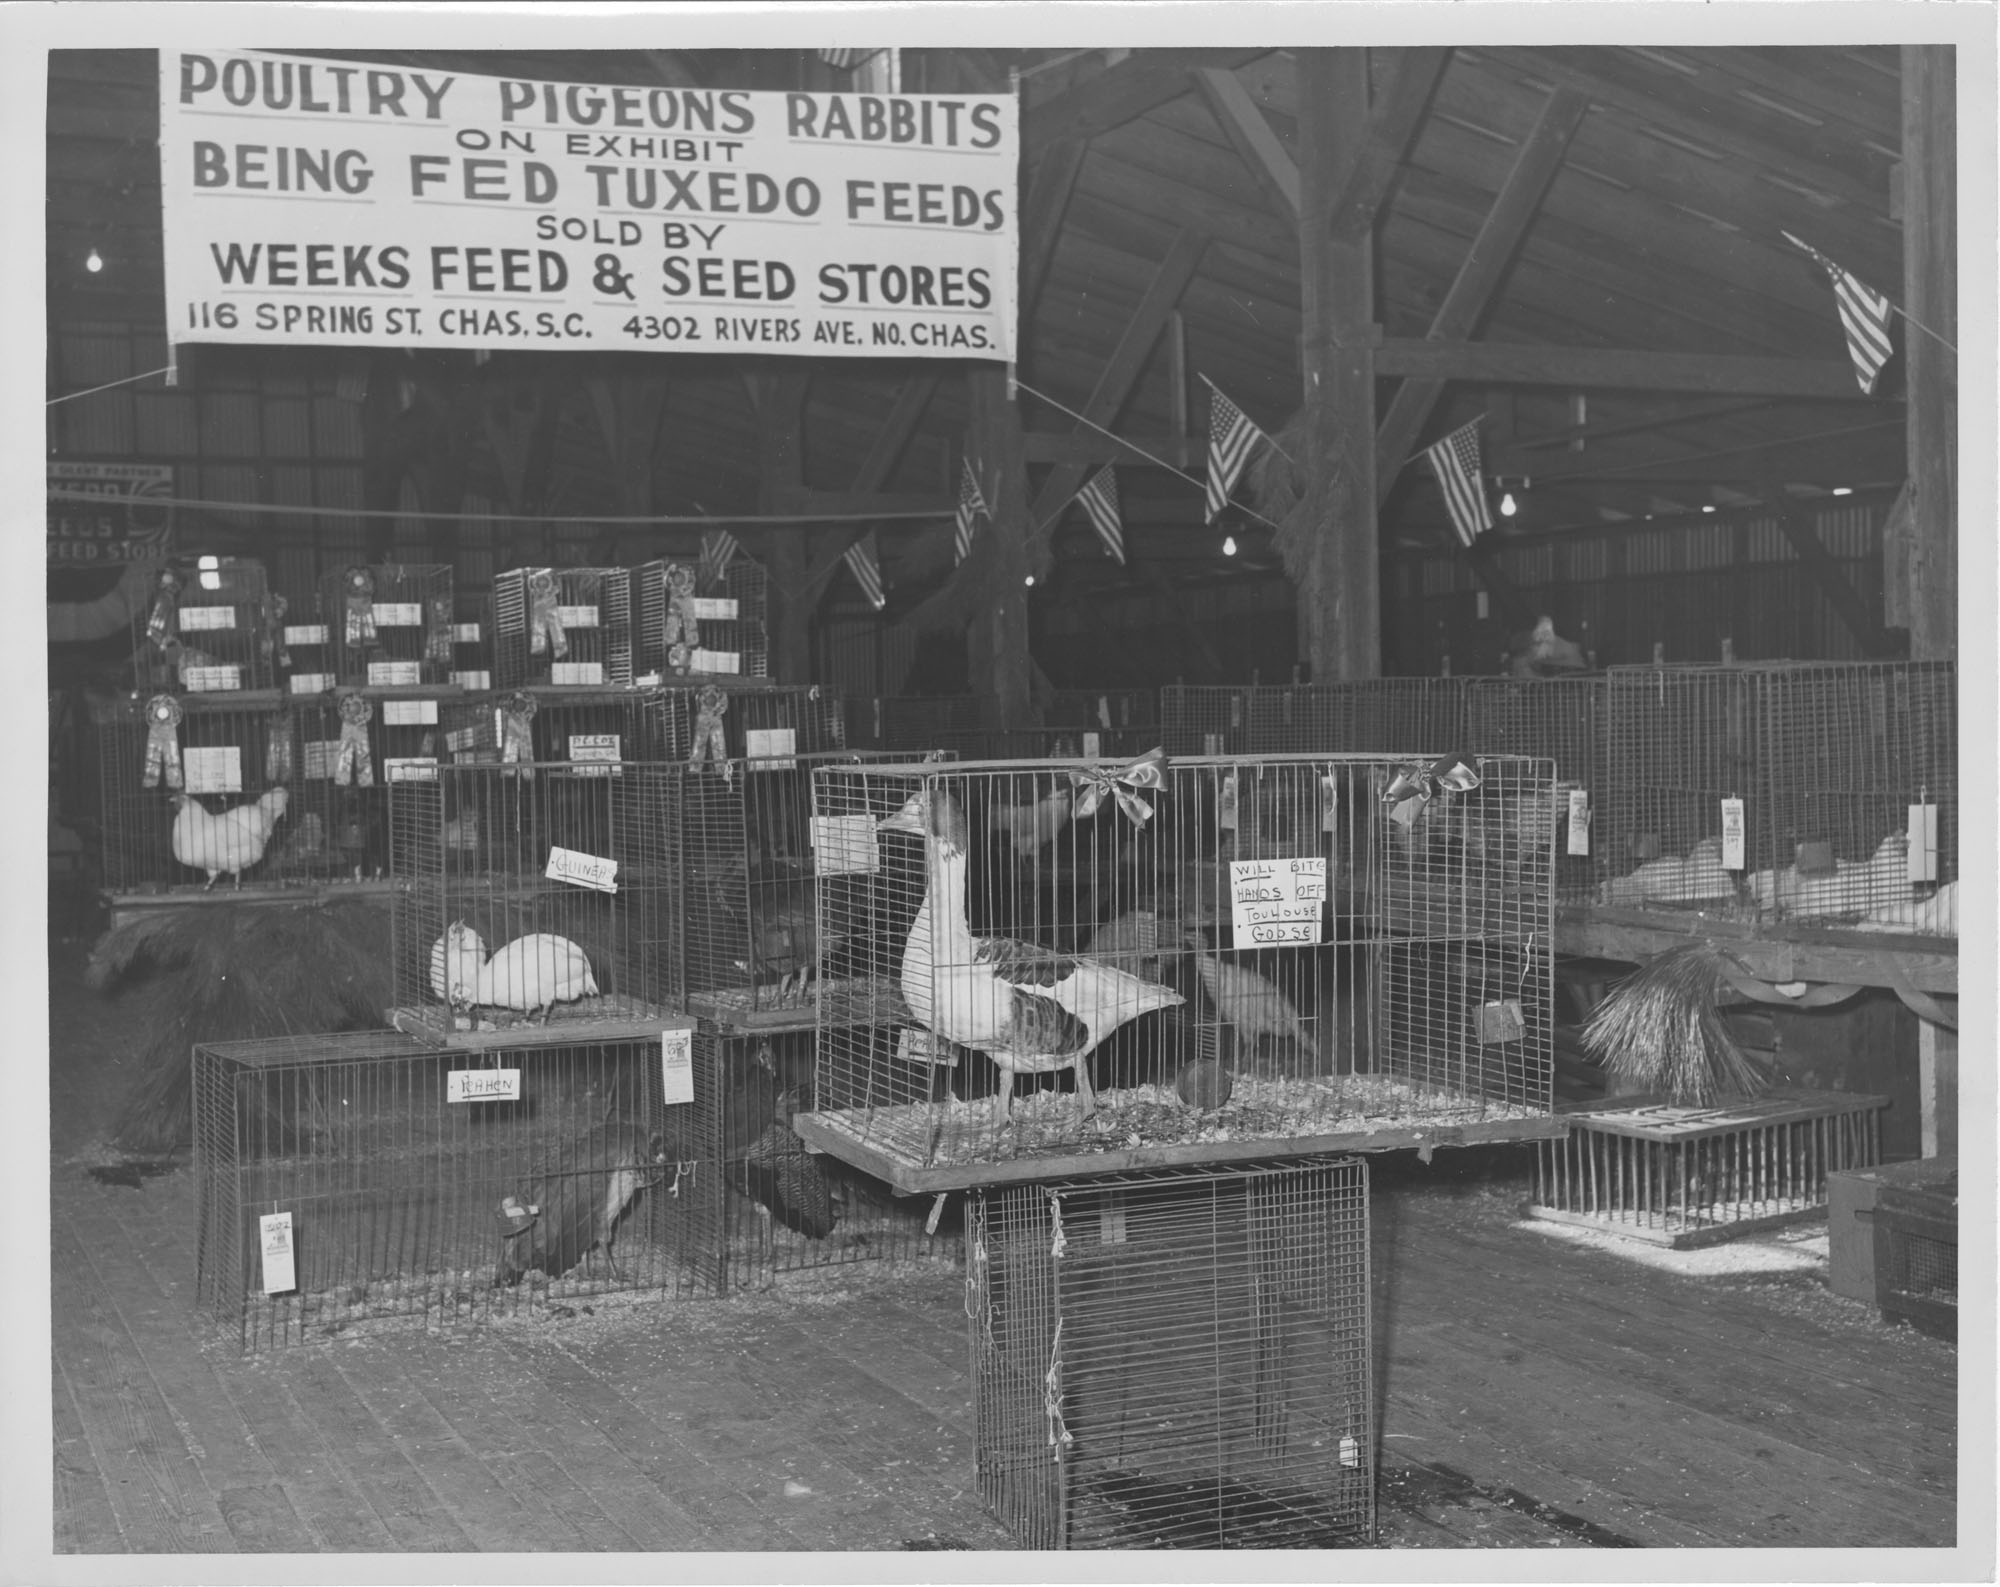 Poultry, Pigeons and Rabbits Fair Exhibit